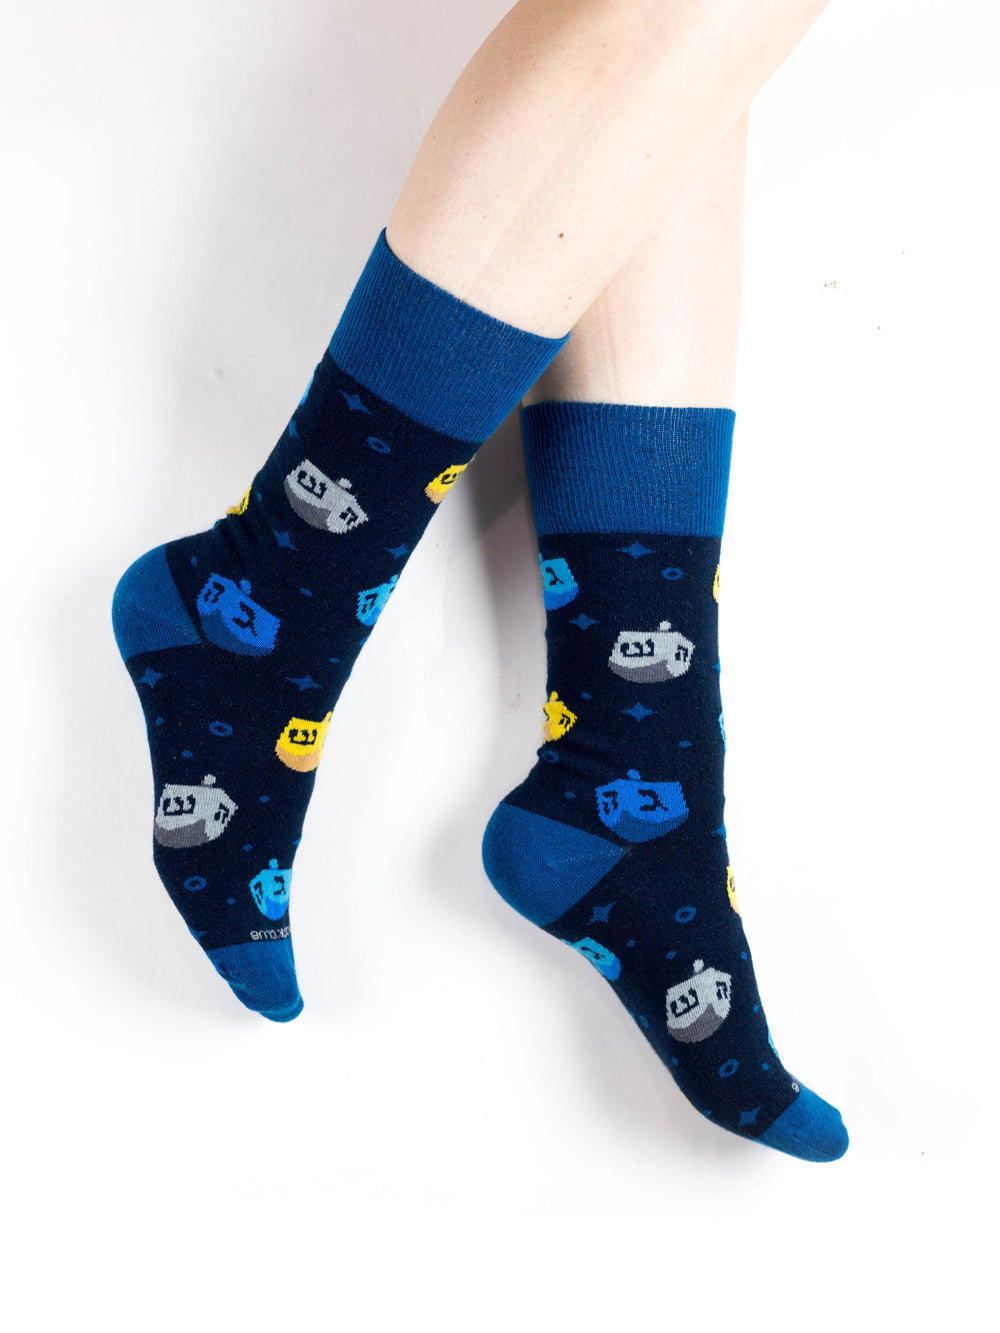 Hanukkah Sock - Limited Edition - Sock Club Store